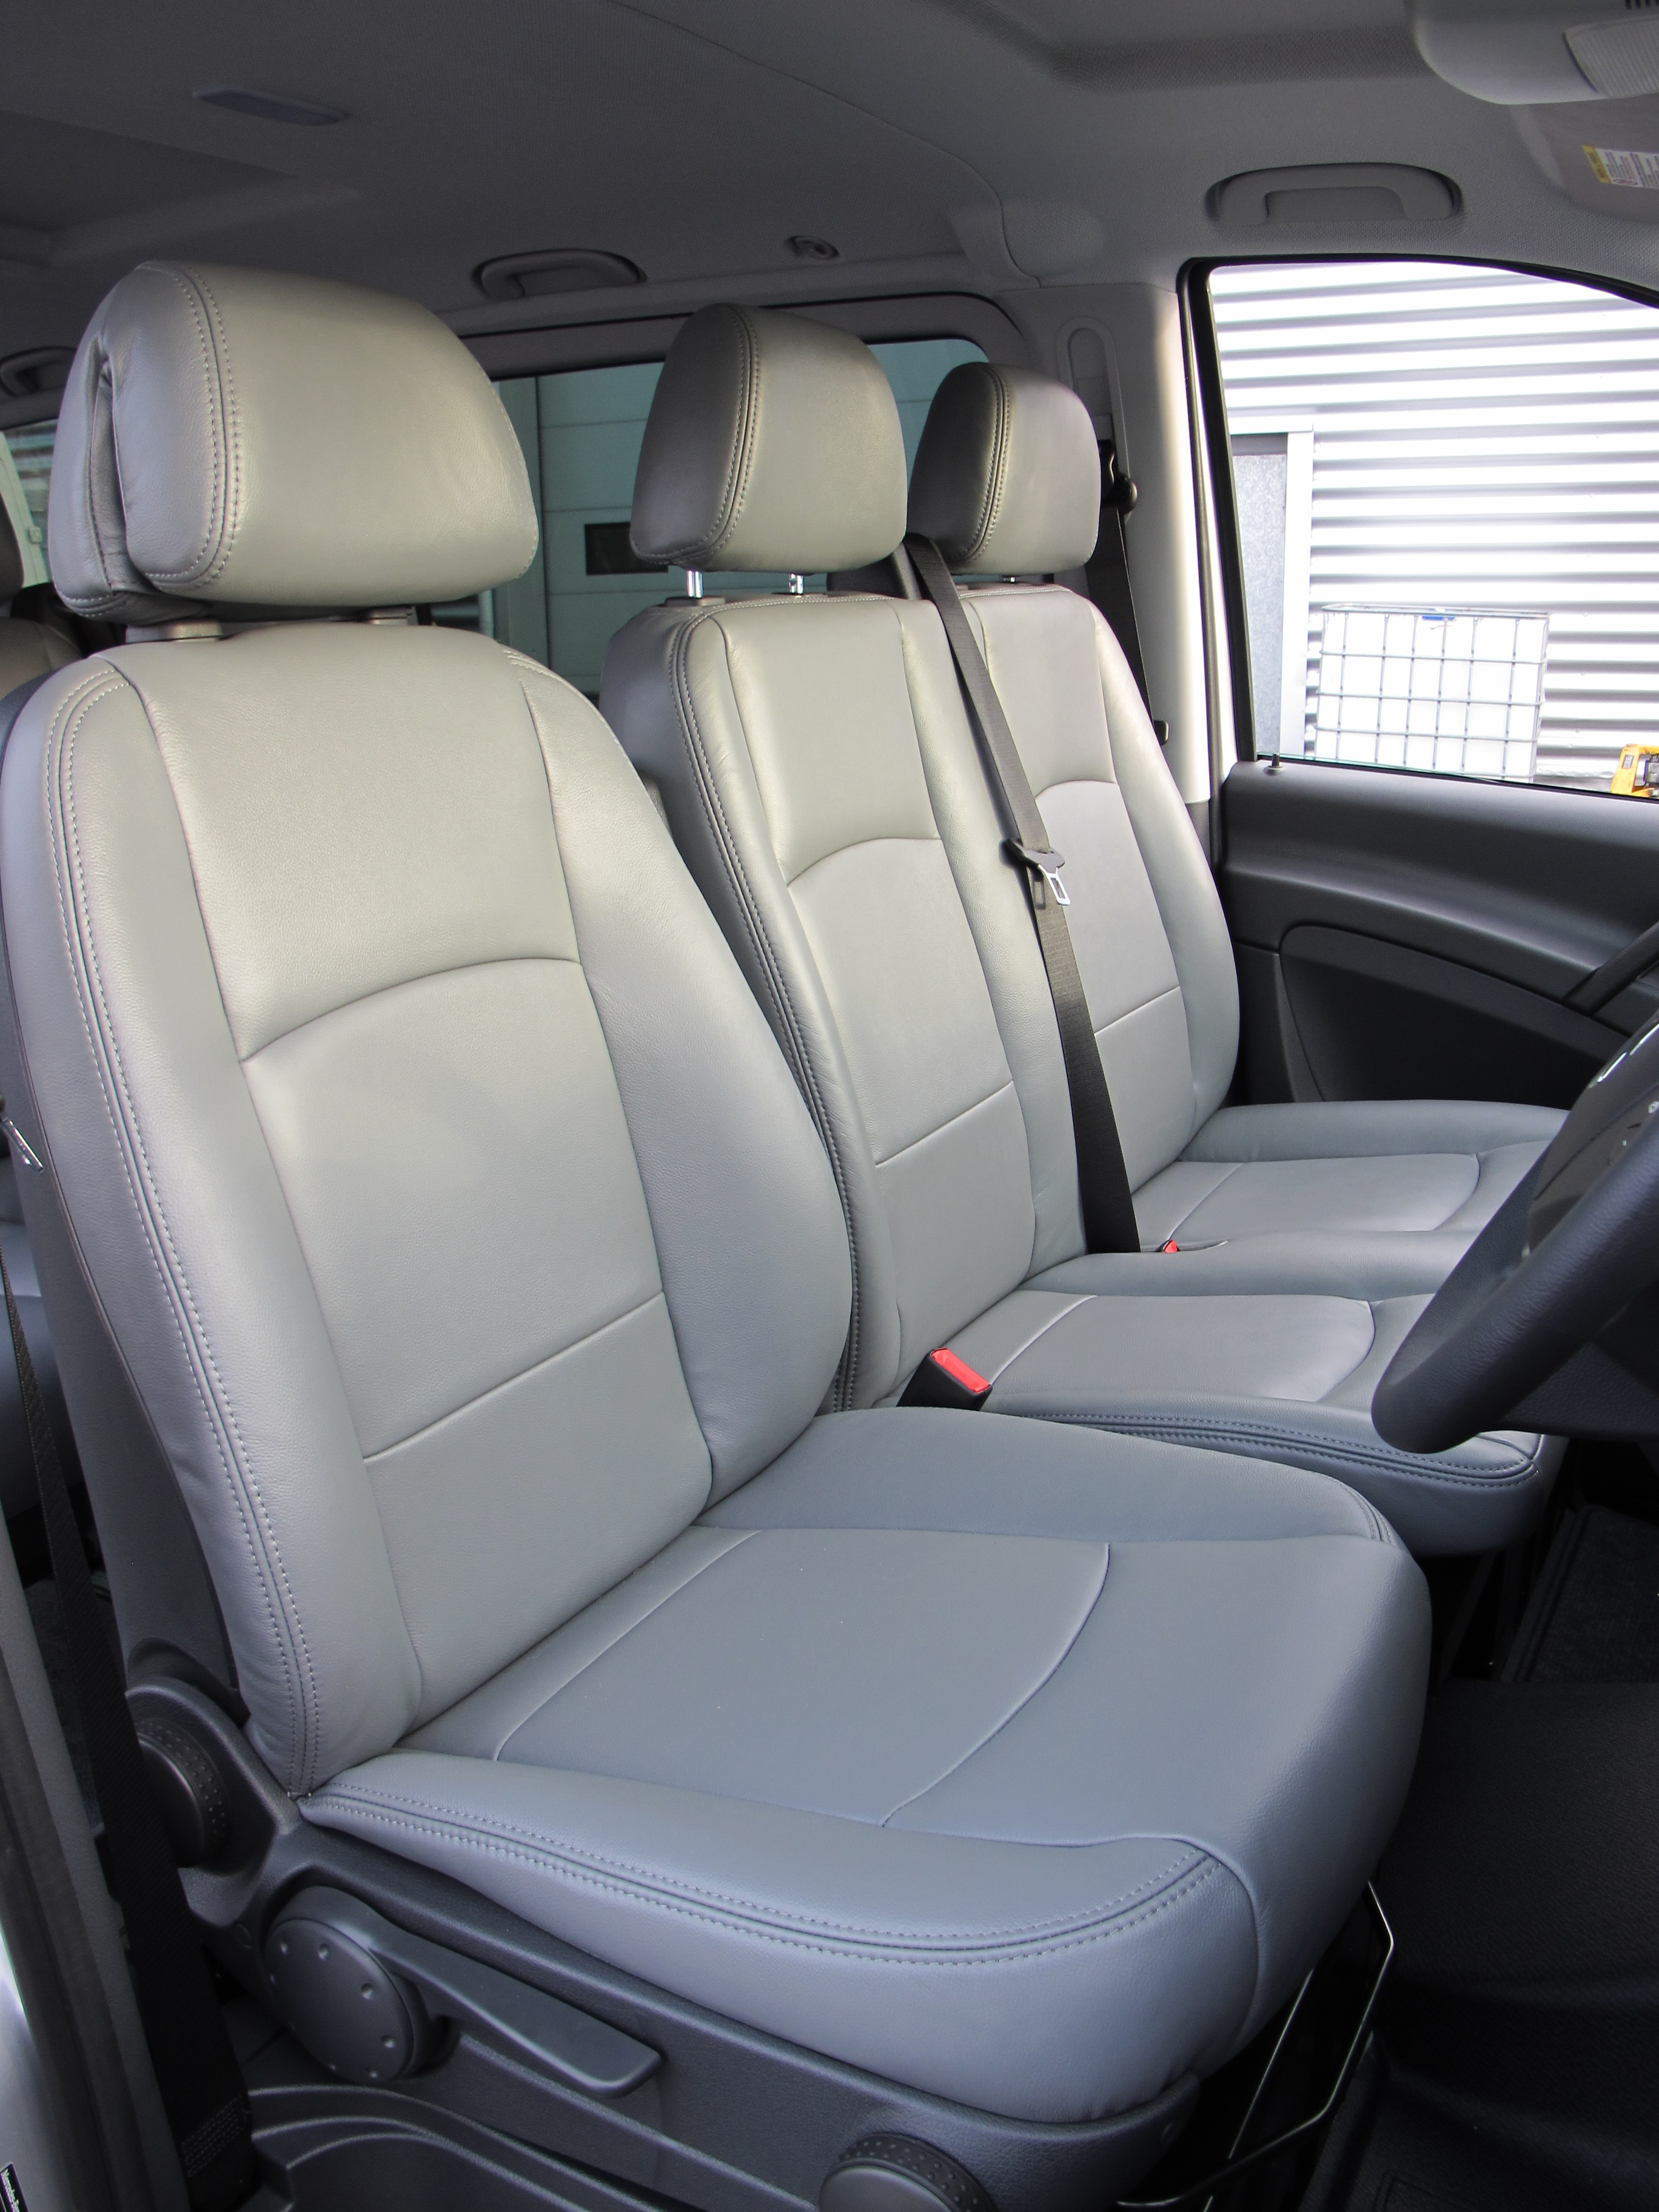 org mbworld replacement mercedes class c covers question seat dsc cover forums done benz